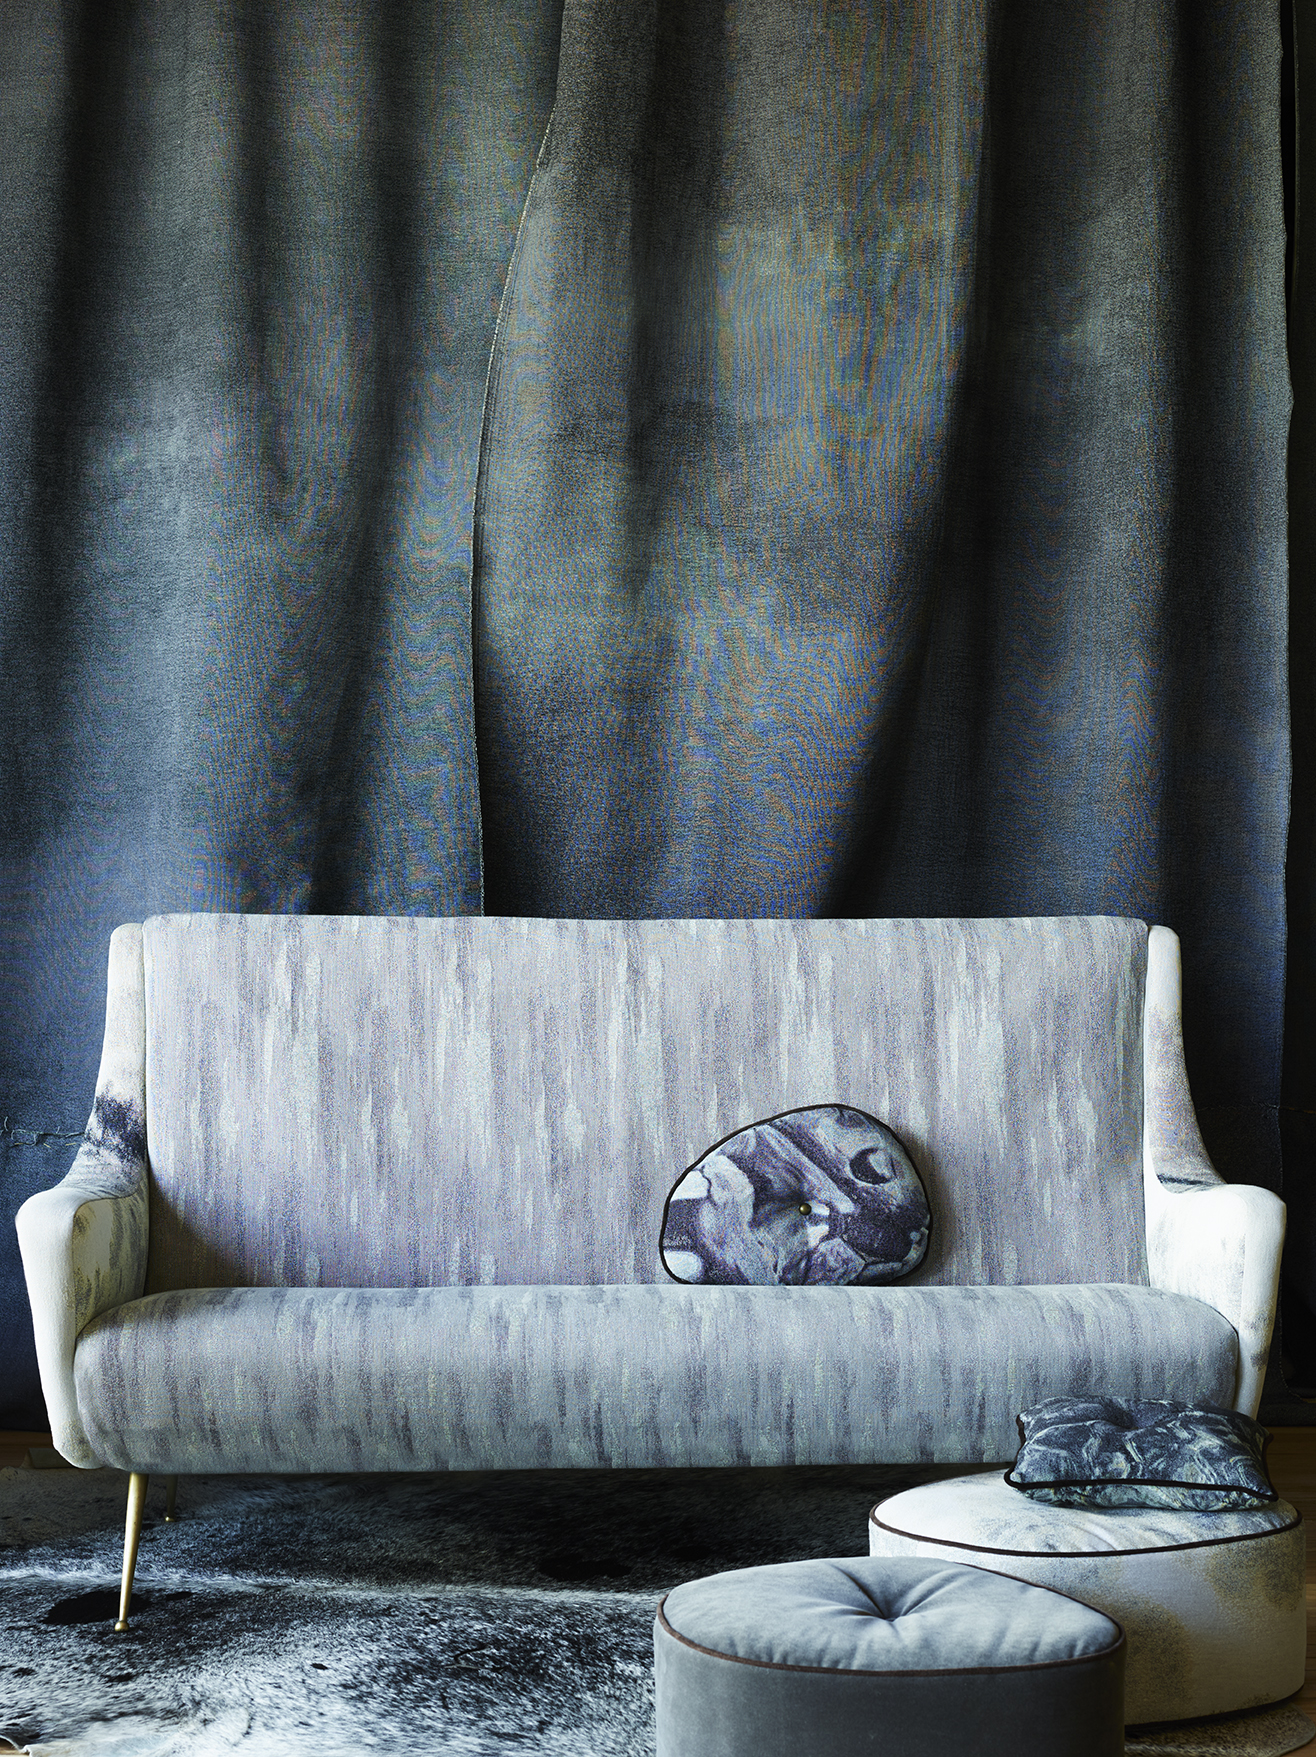 watercolor with cloud 9 sofa_579SS.jpg